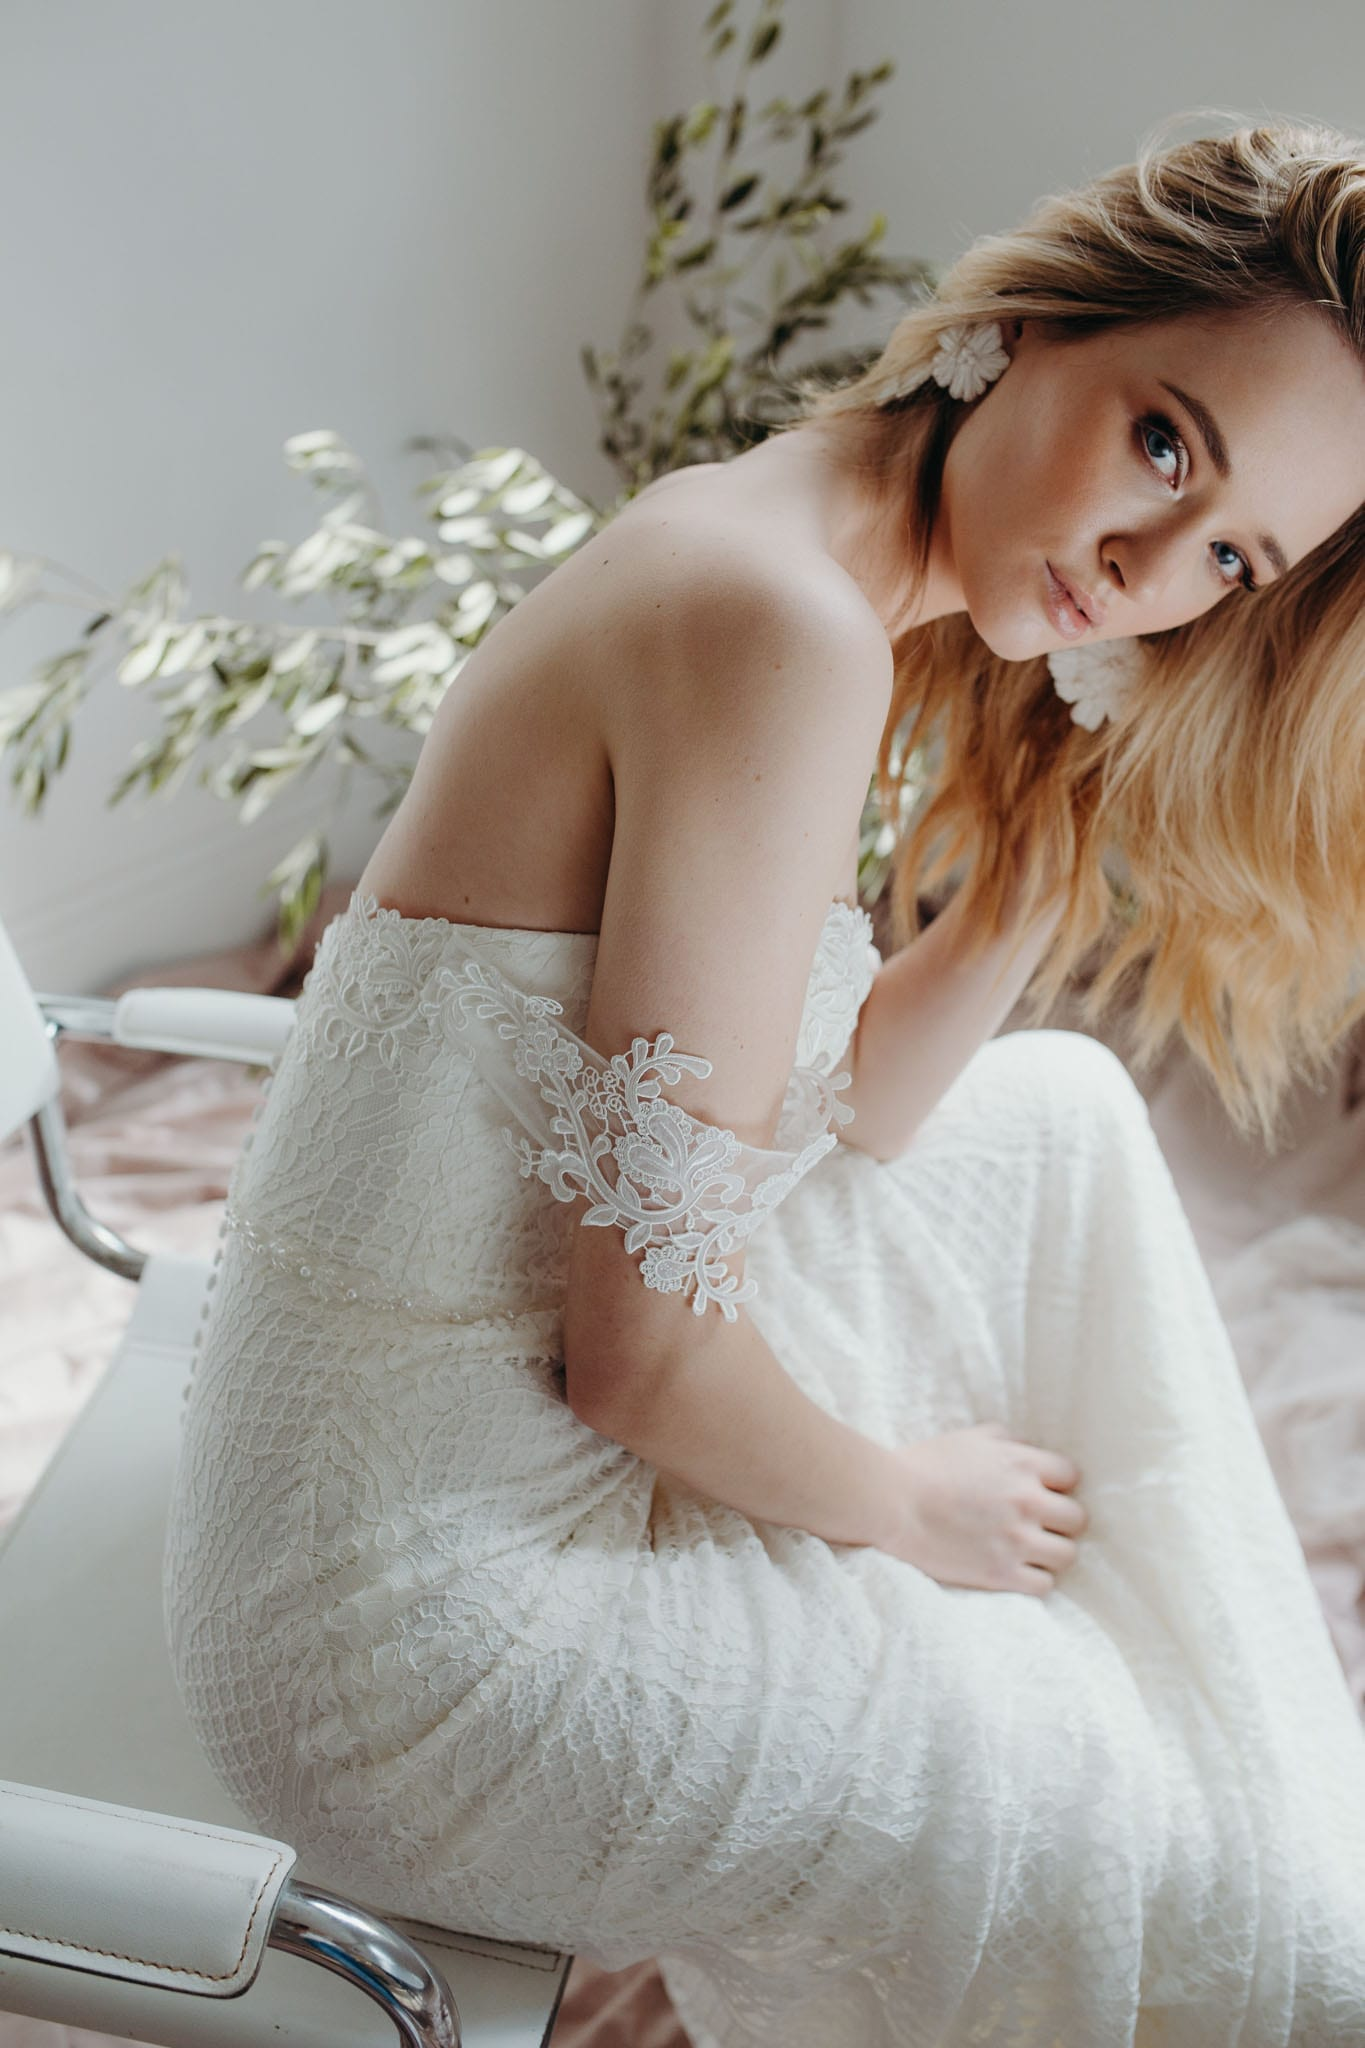 Aster wedding dress daisy brides